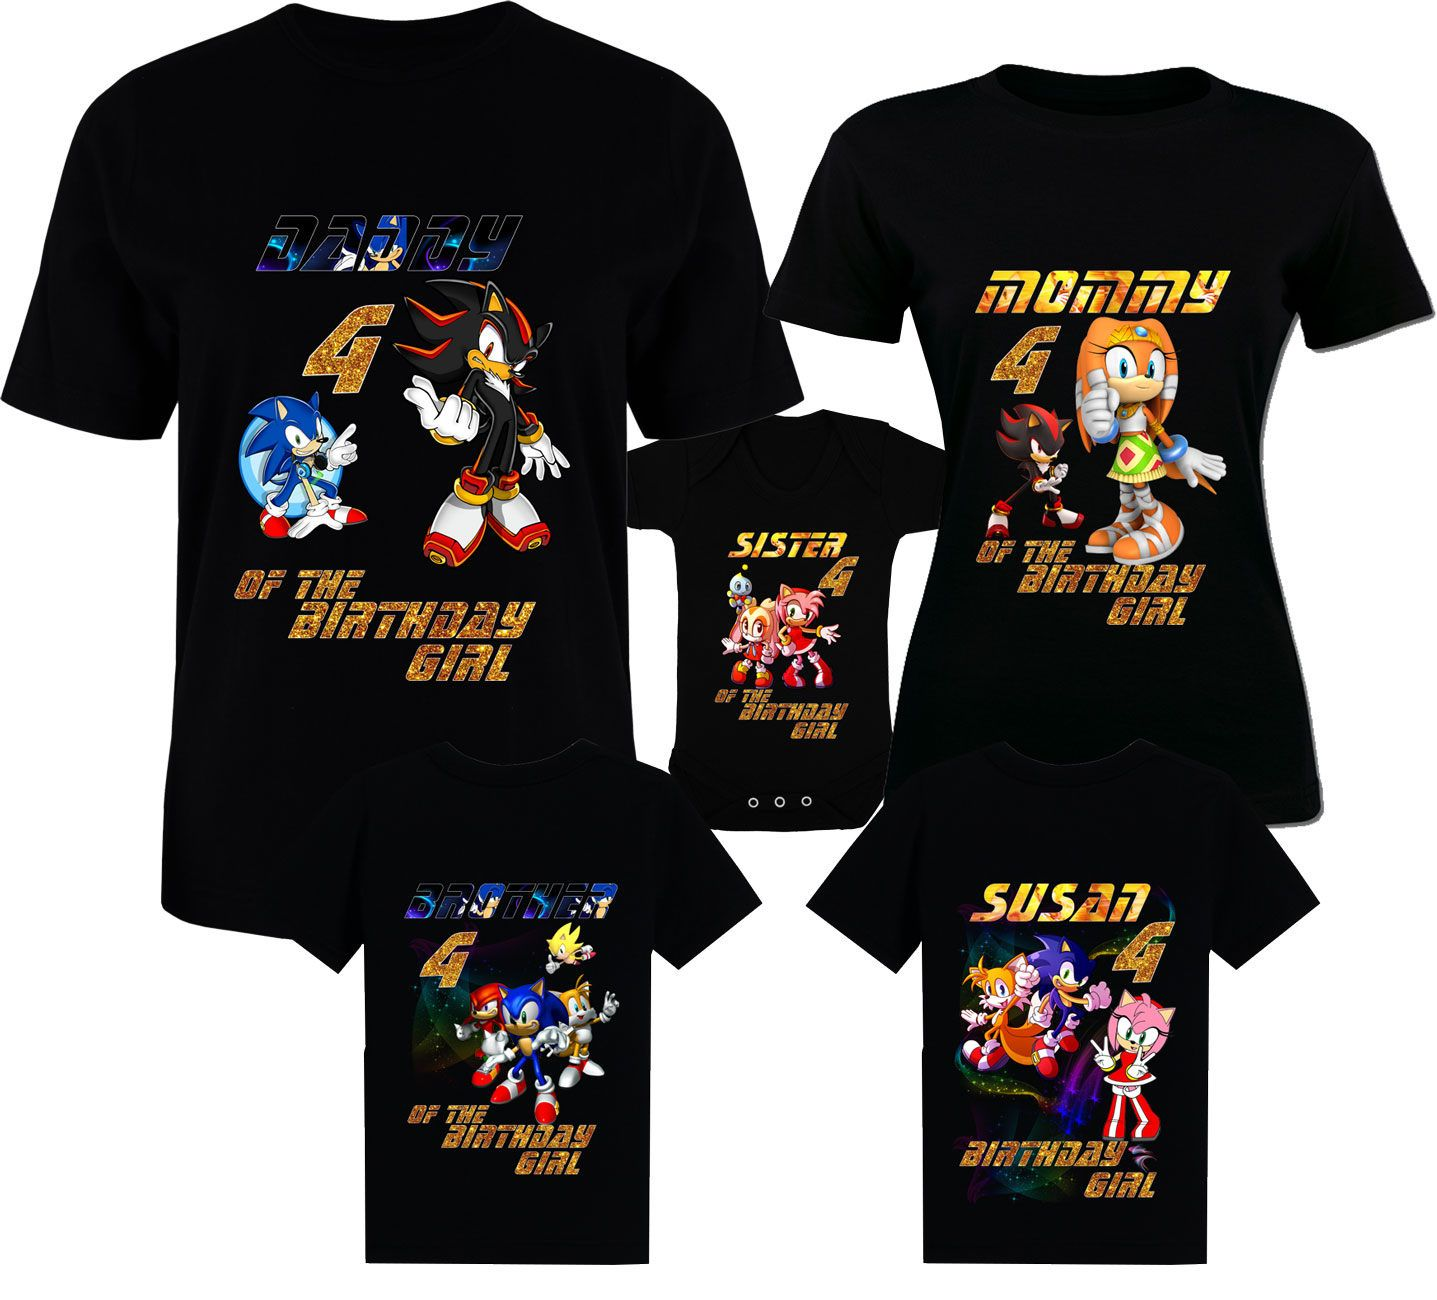 Birthday Sonic Shirts Sonic Family Shirts Sonic T Shirt Birthday T Shirts Sonic Amy Rose Tee The Hedgehog Tee Miles Sonic T Shirt Sonic And Amy Family Shirts